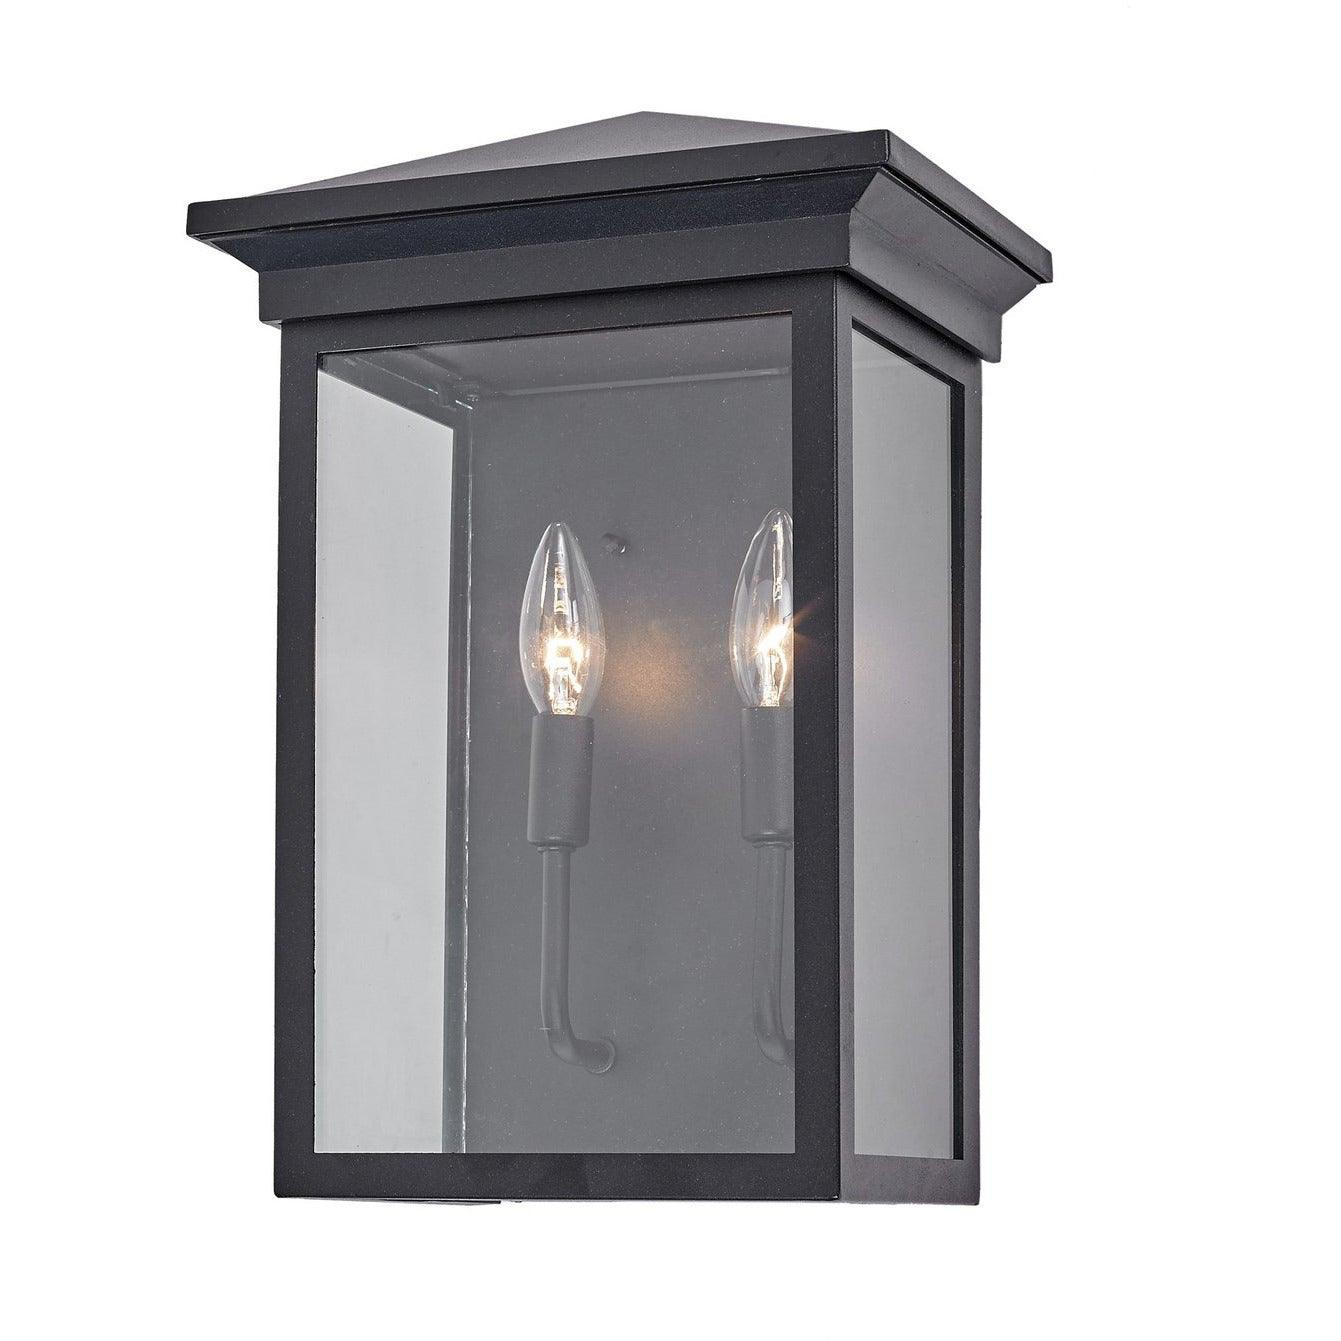 Artcraft Lighting - AC8462BK - Two Light Outdoor Wall Mount - Gable - Black